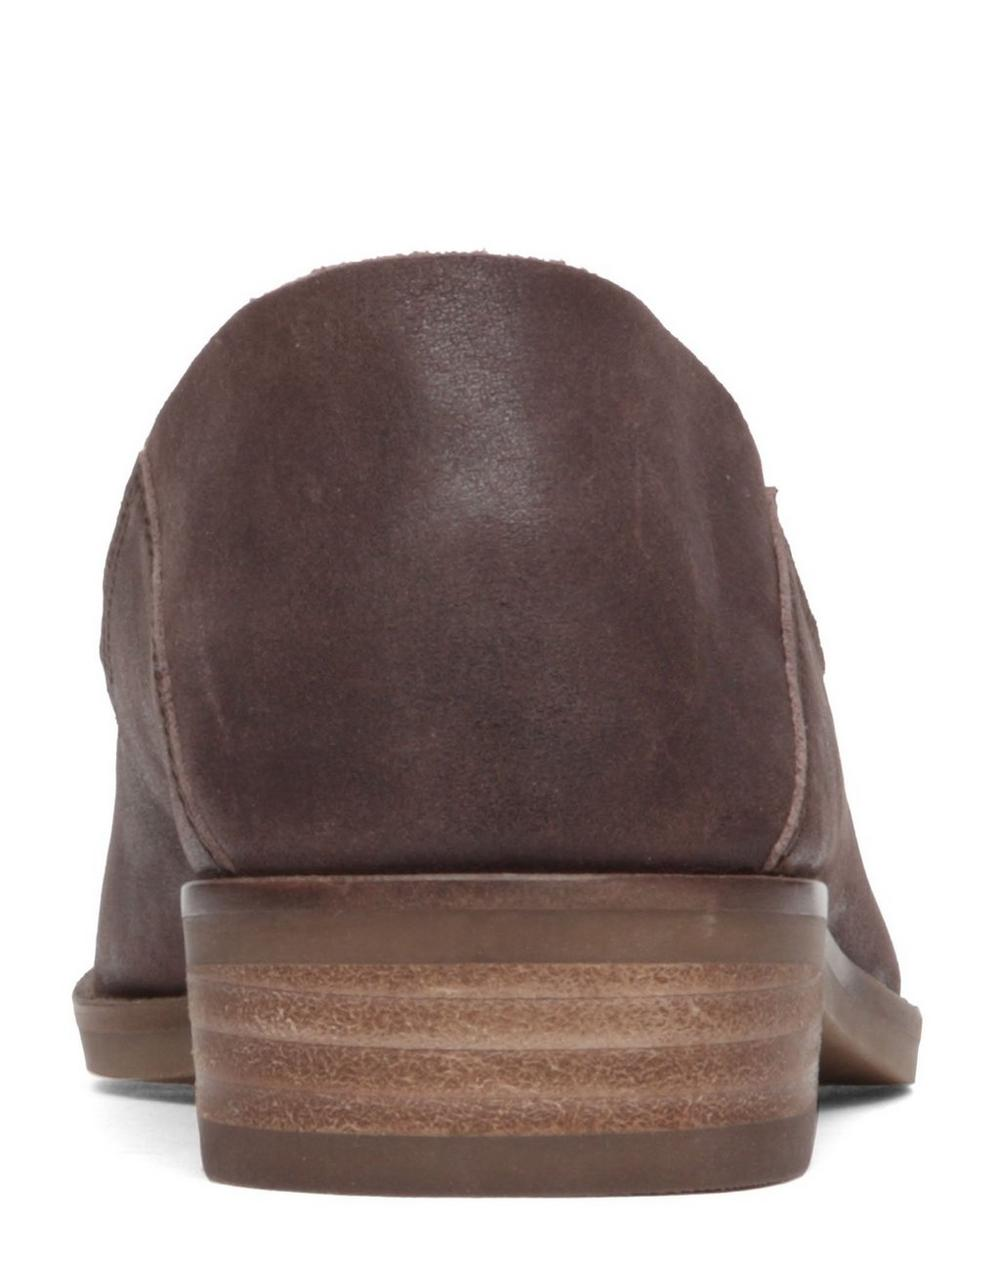 CAHILL LEATHER FLAT, image 5